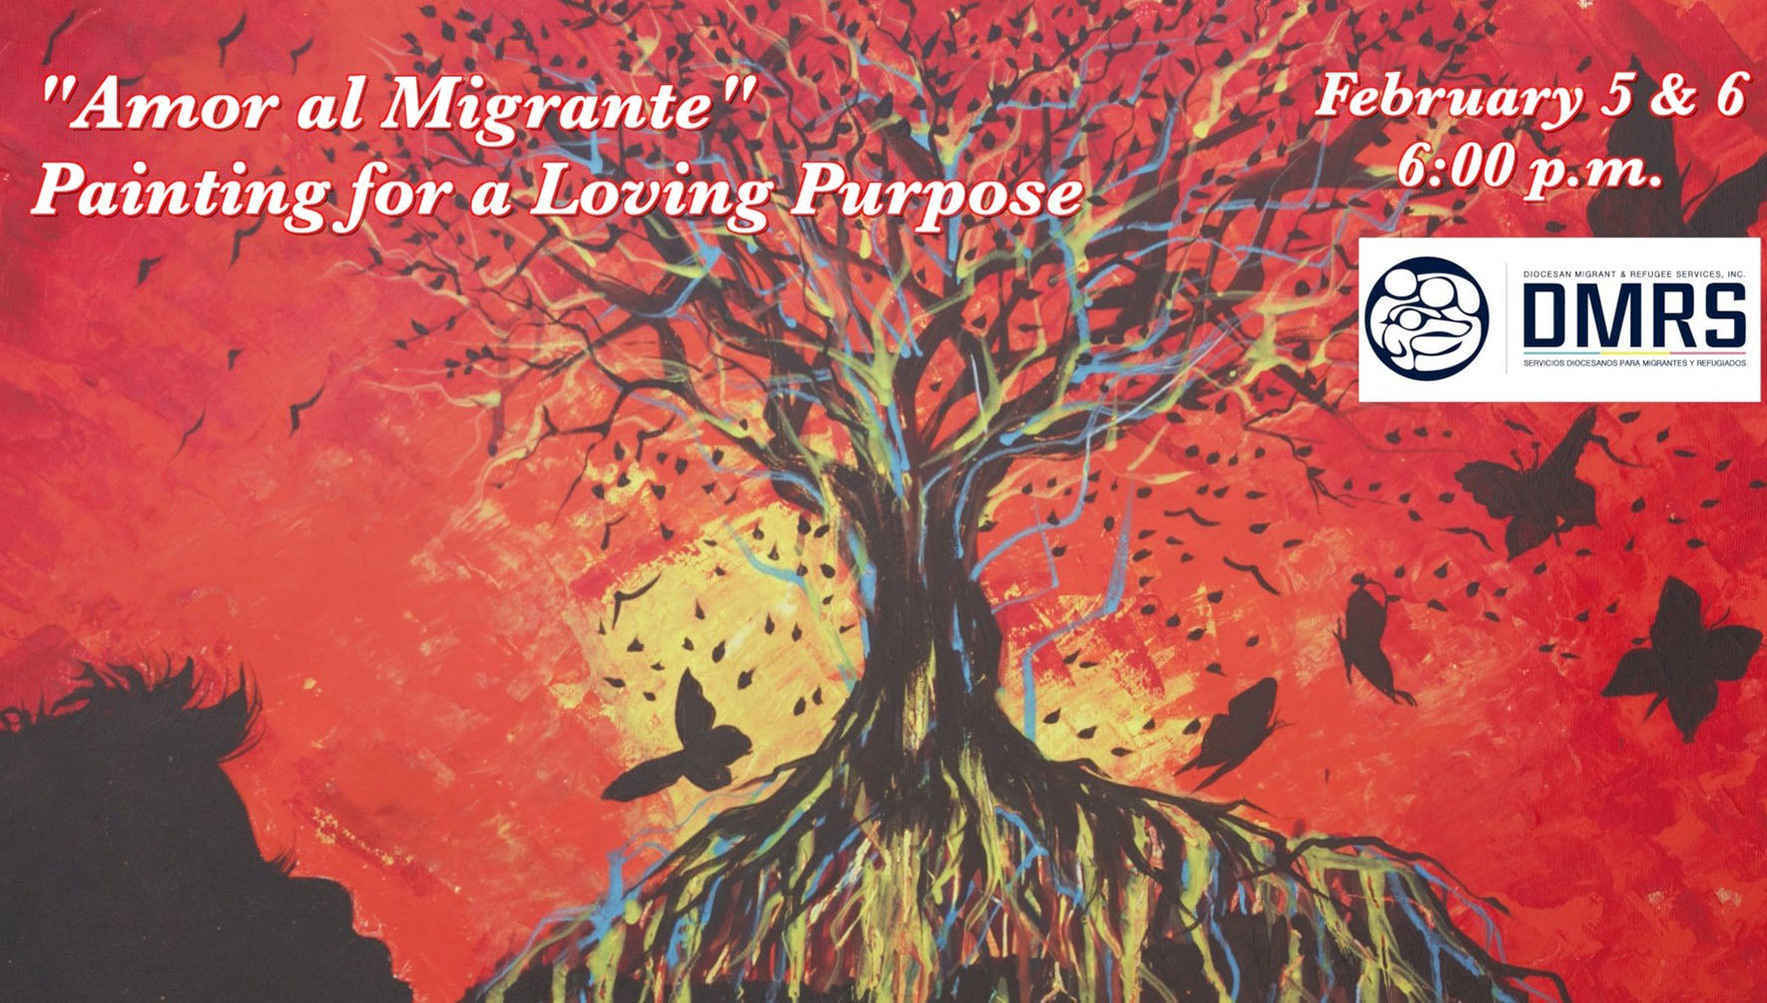 Flash Sale for February 5, 2020: Amor al Migrante: Painting for a Loving Purpose image